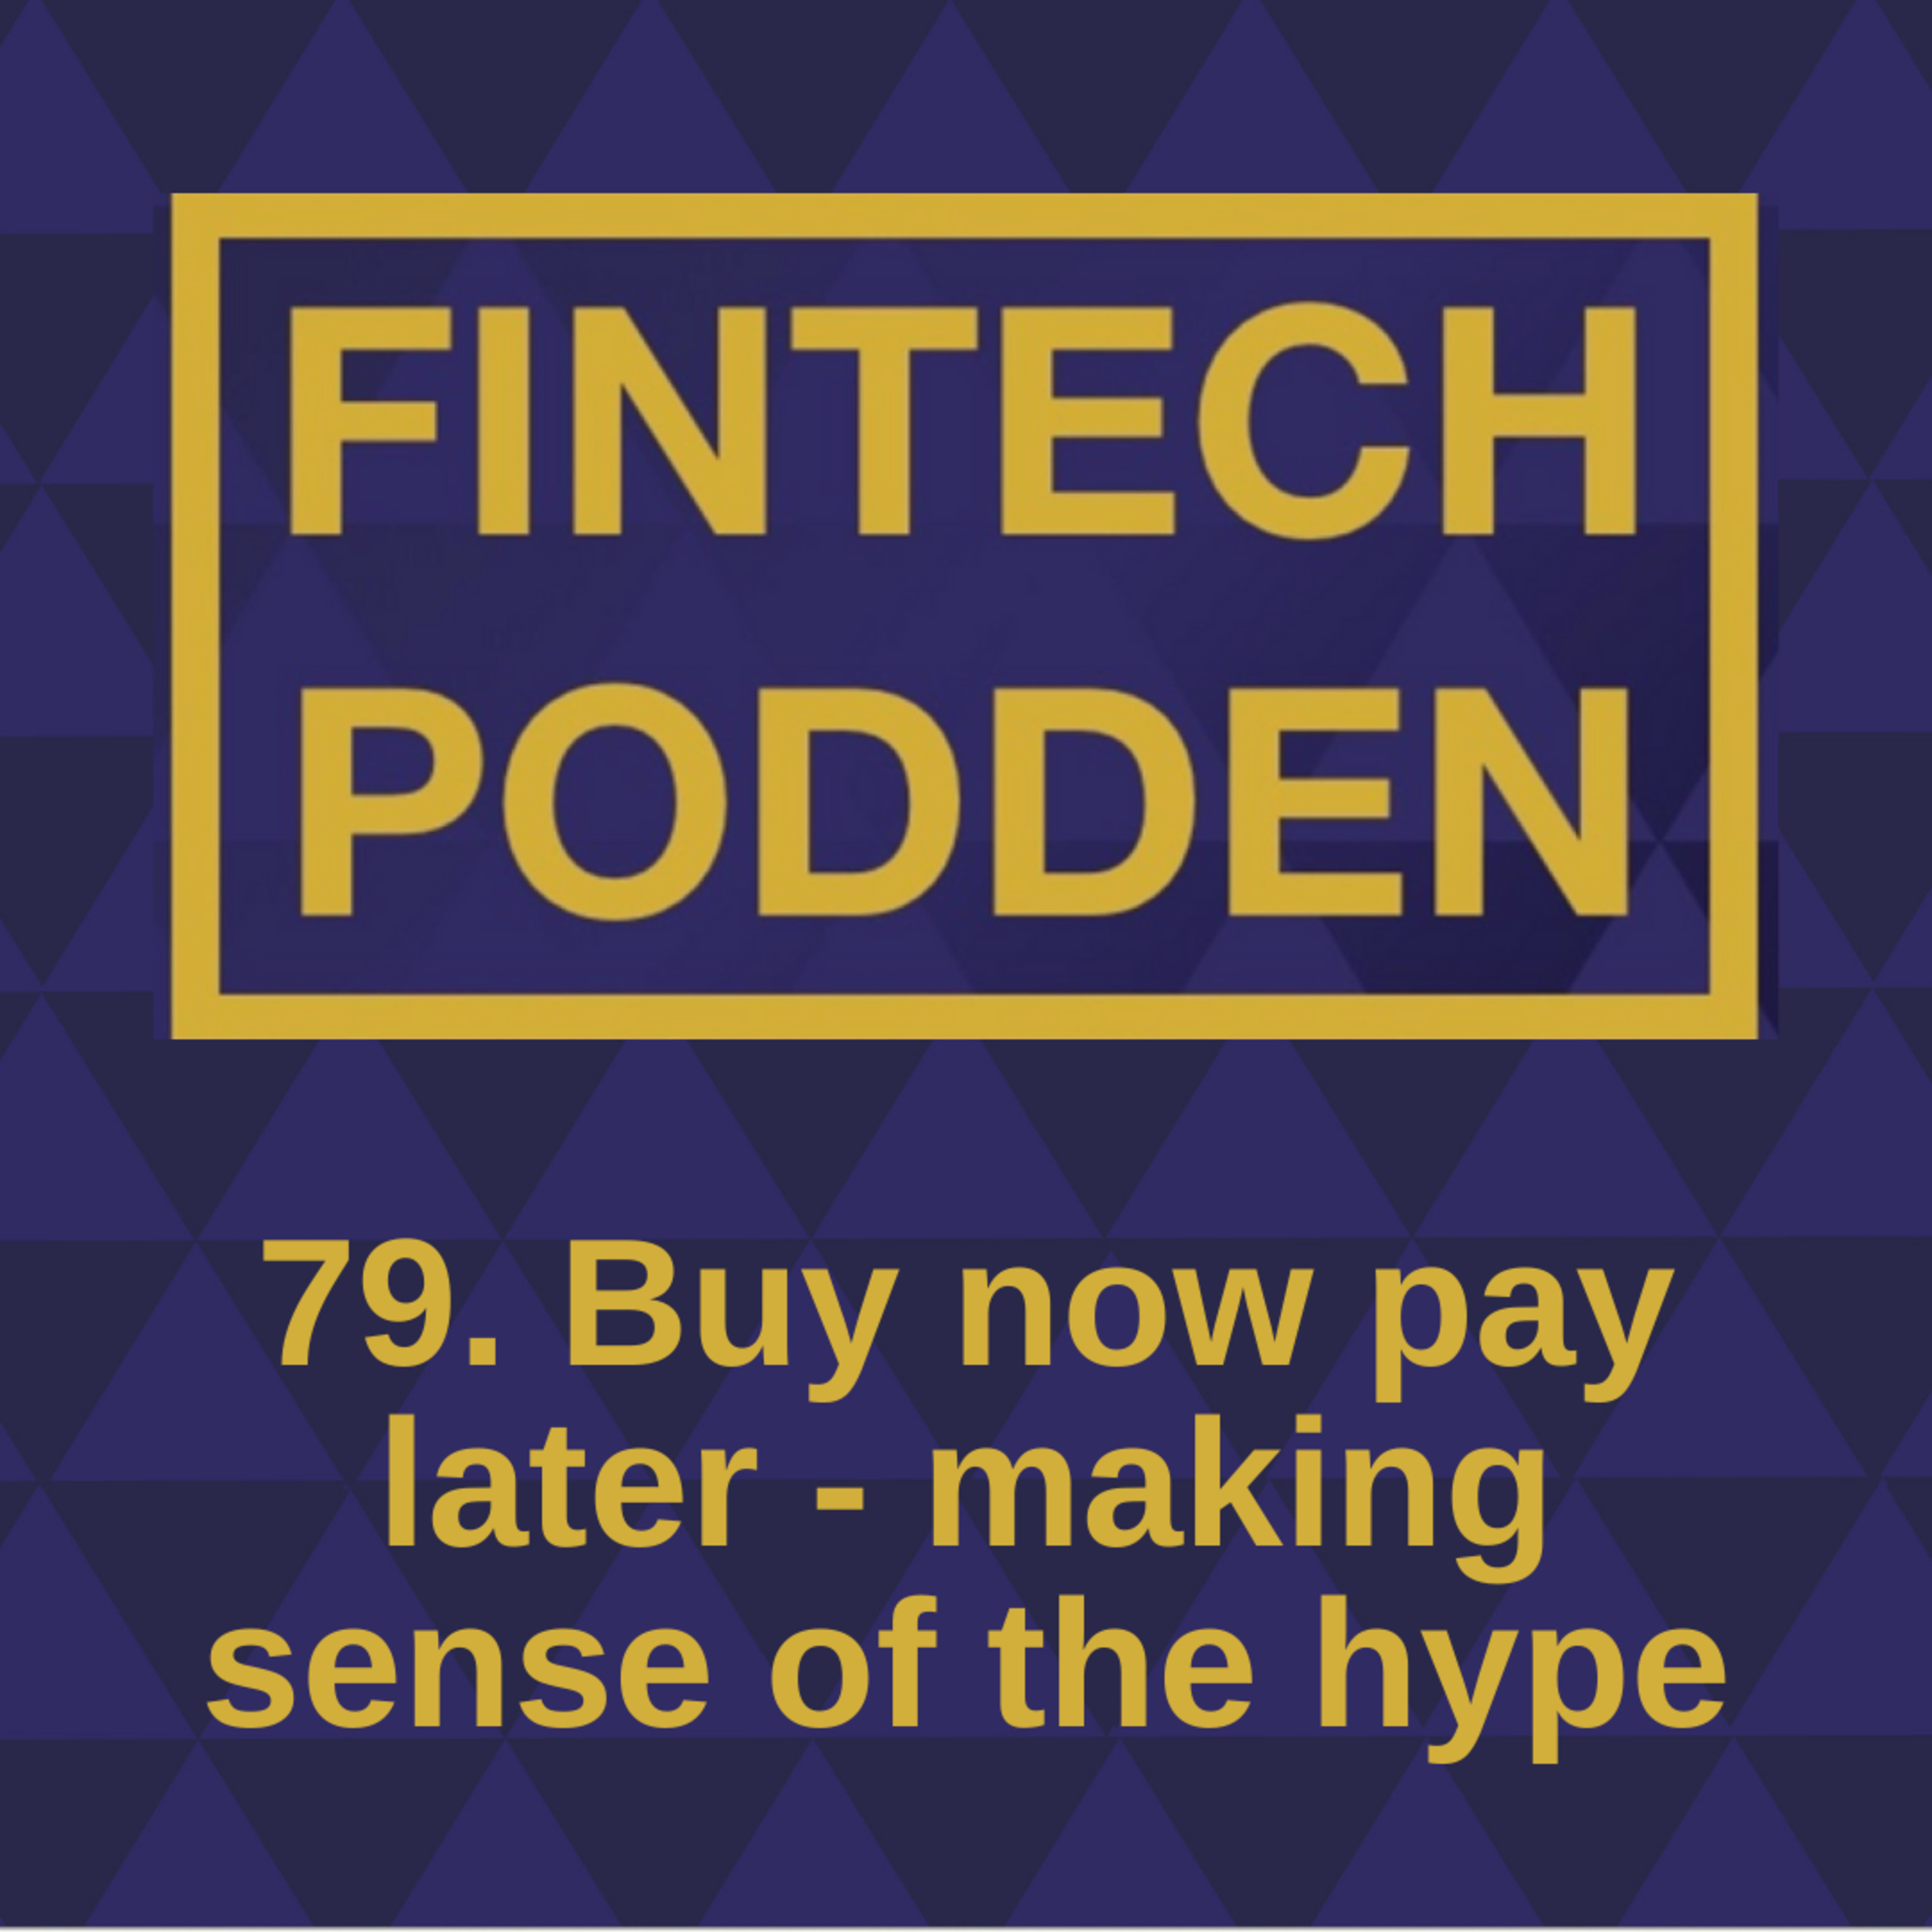 79. Buy now pay later - making sense of the hype